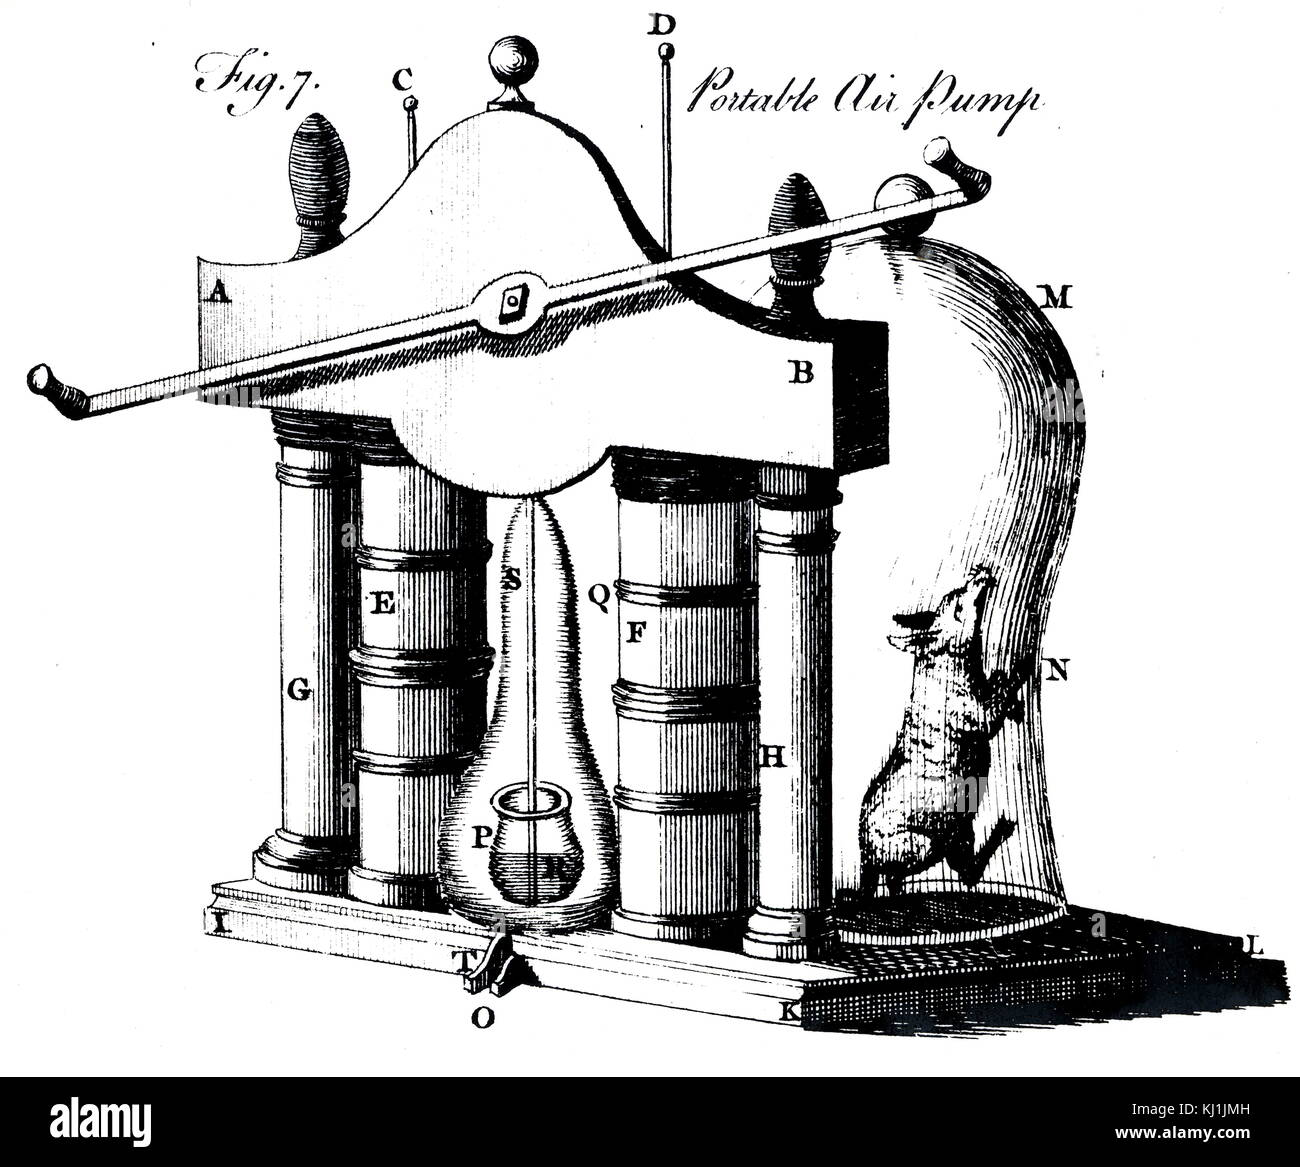 Engraving depicting the evacuating of a bell jar by means of a portable air pump in order to examine the effect - Stock Image